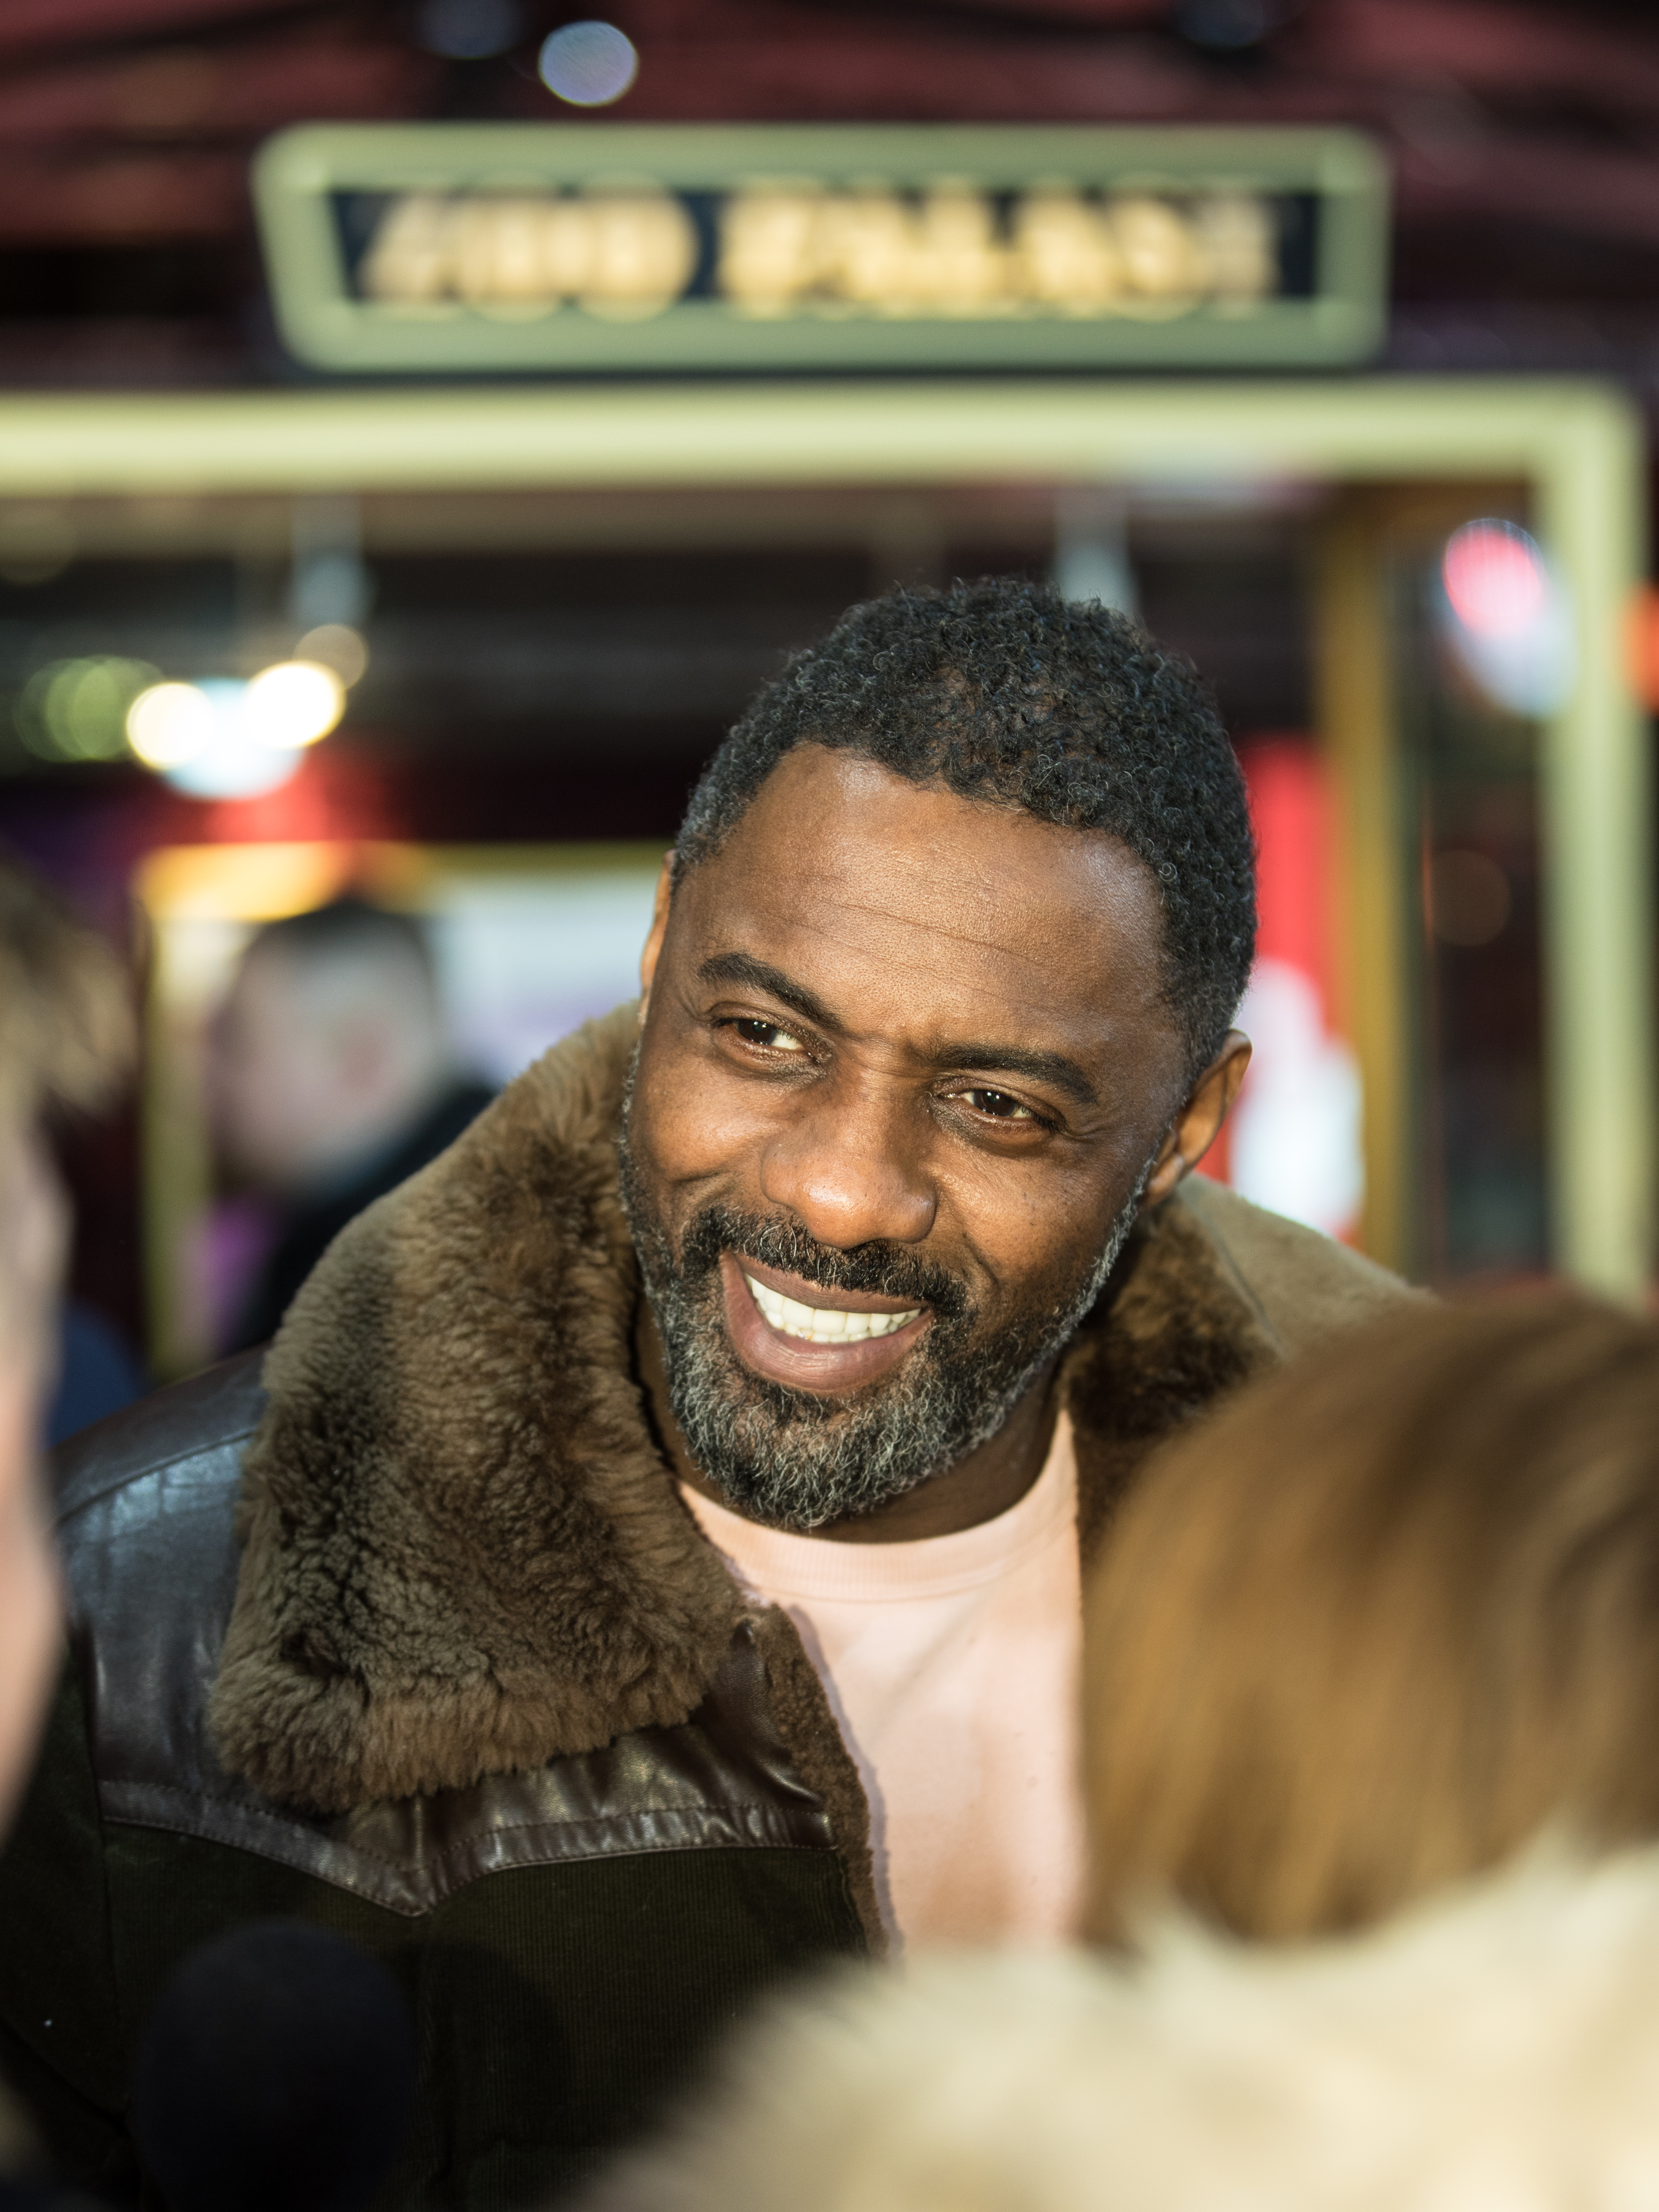 The 47-year old son of father (?) and mother(?) Idris Elba in 2020 photo. Idris Elba earned a million dollar salary - leaving the net worth at 12 million in 2020